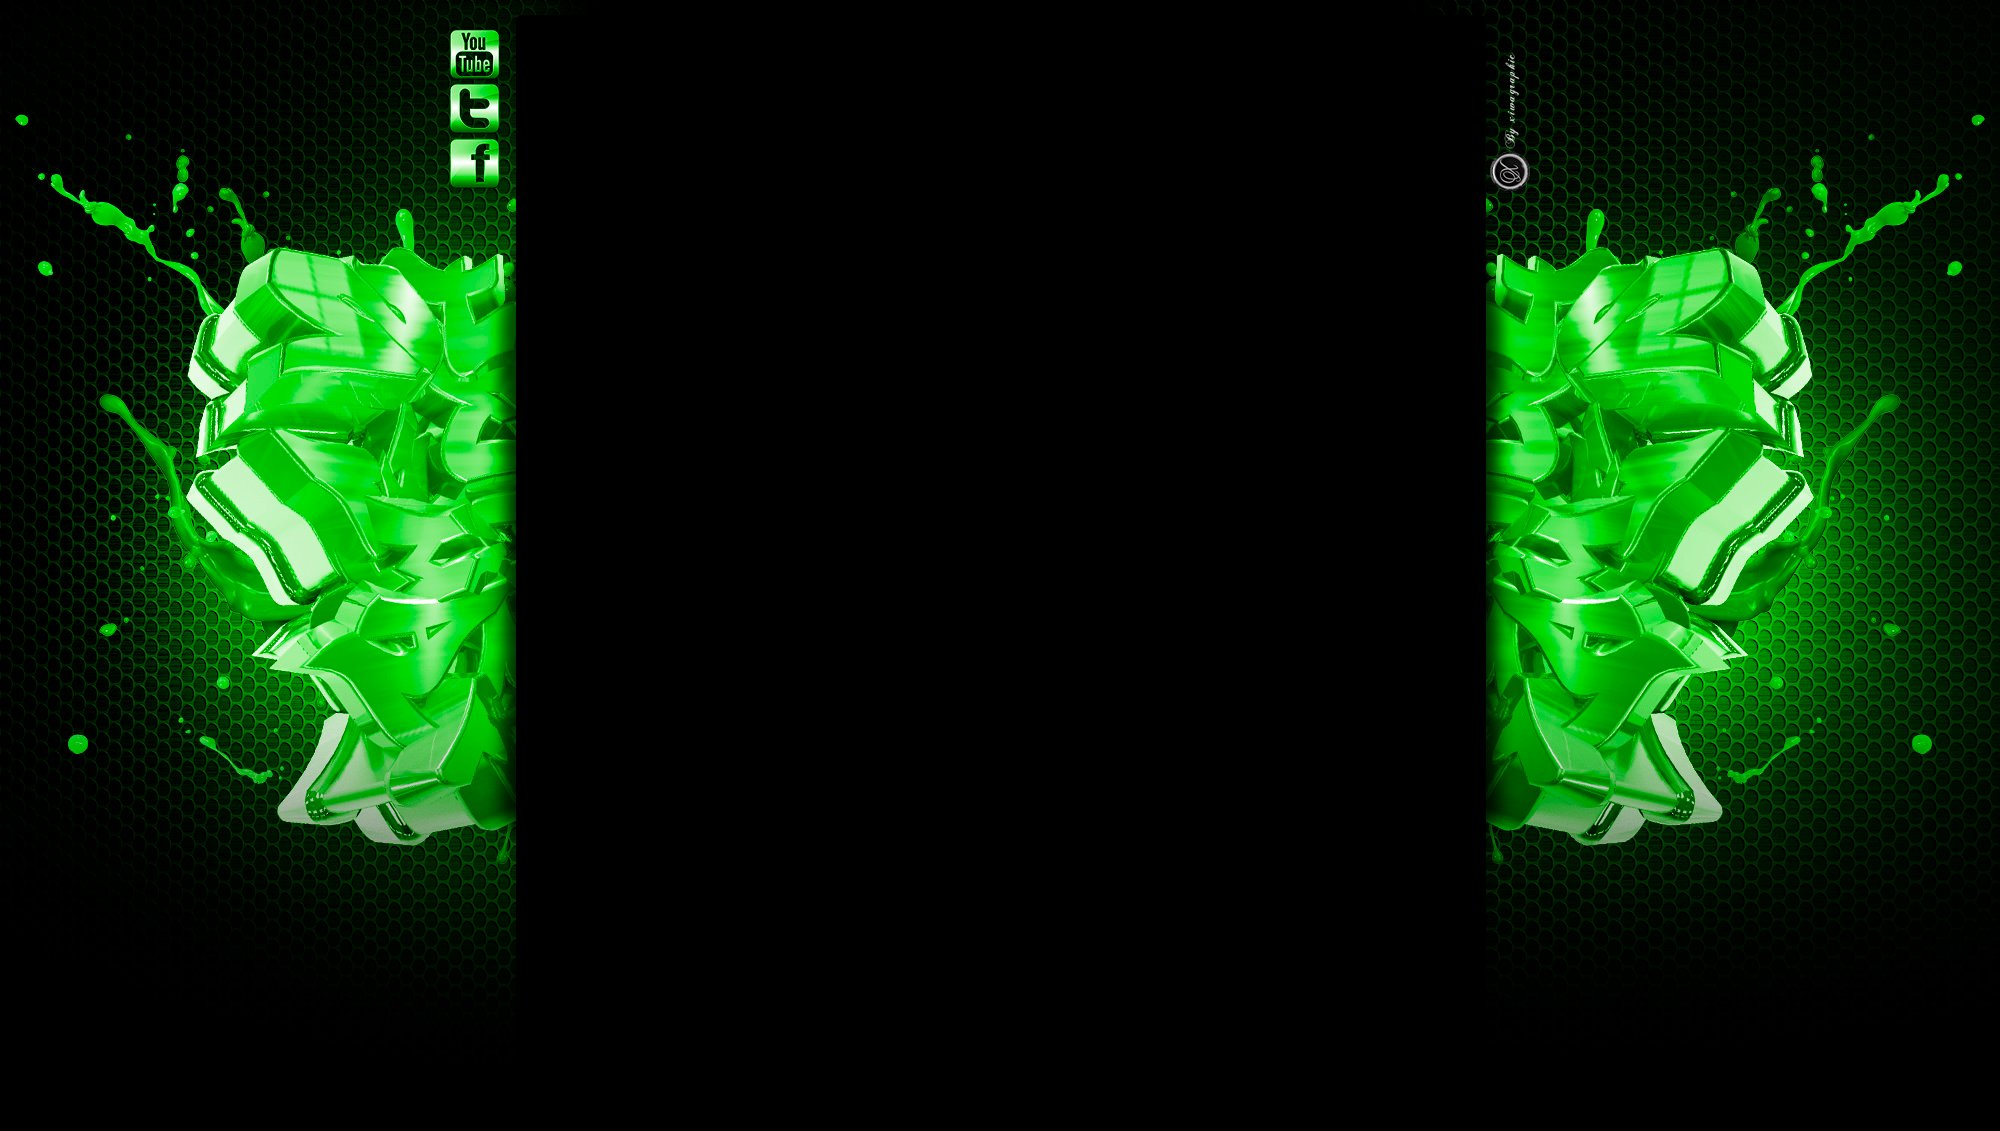 Cool Gaming Backgrounds For Youtube 2013 Background youtube thimy 2000x1131